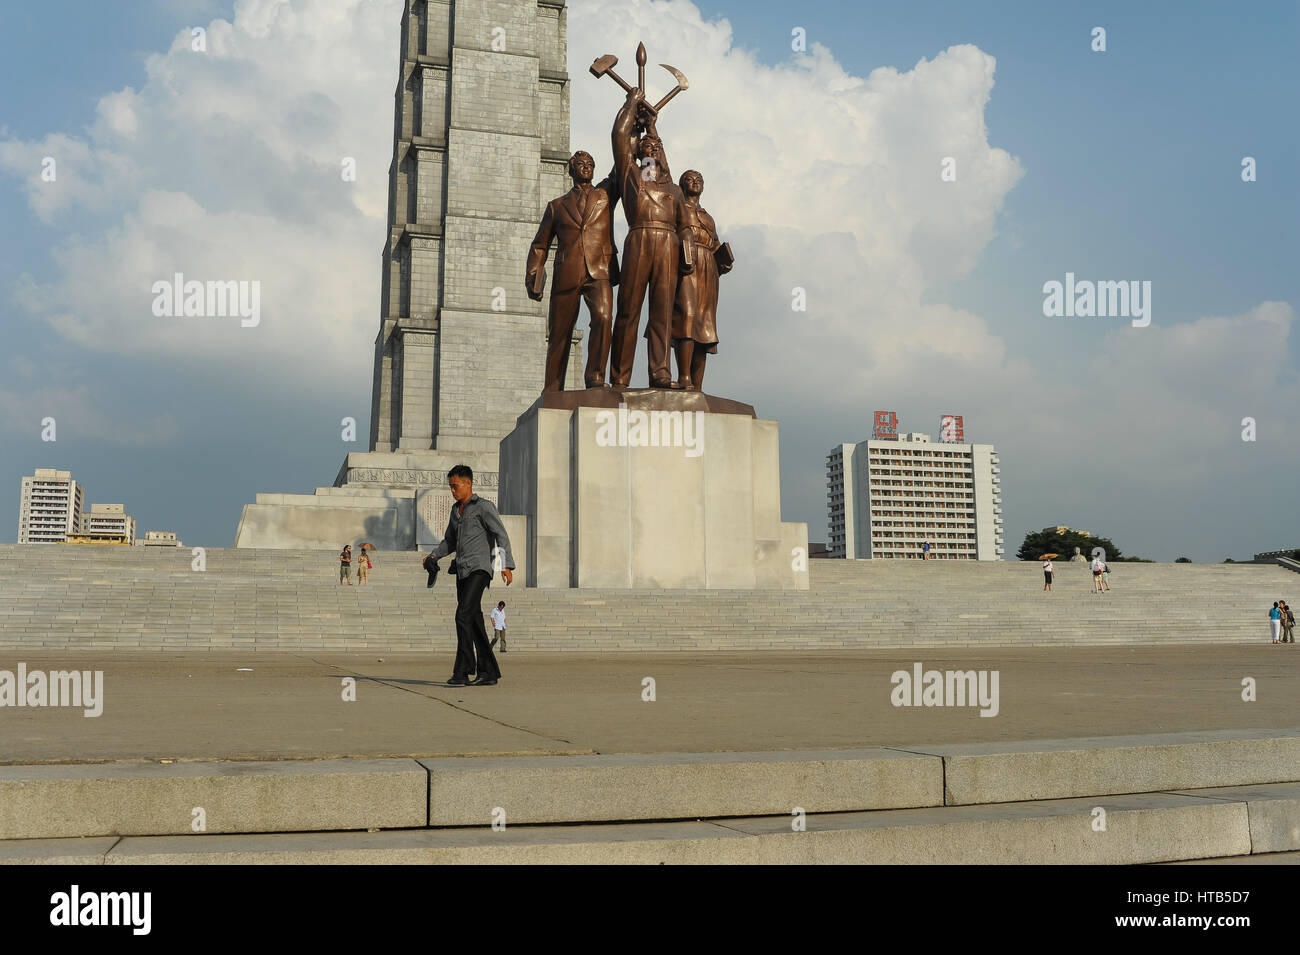 08.08.2012, Pyongyang, North Korea - A man walks by the tower of Juche Idea memorial near the shores of the Taedong - Stock Image